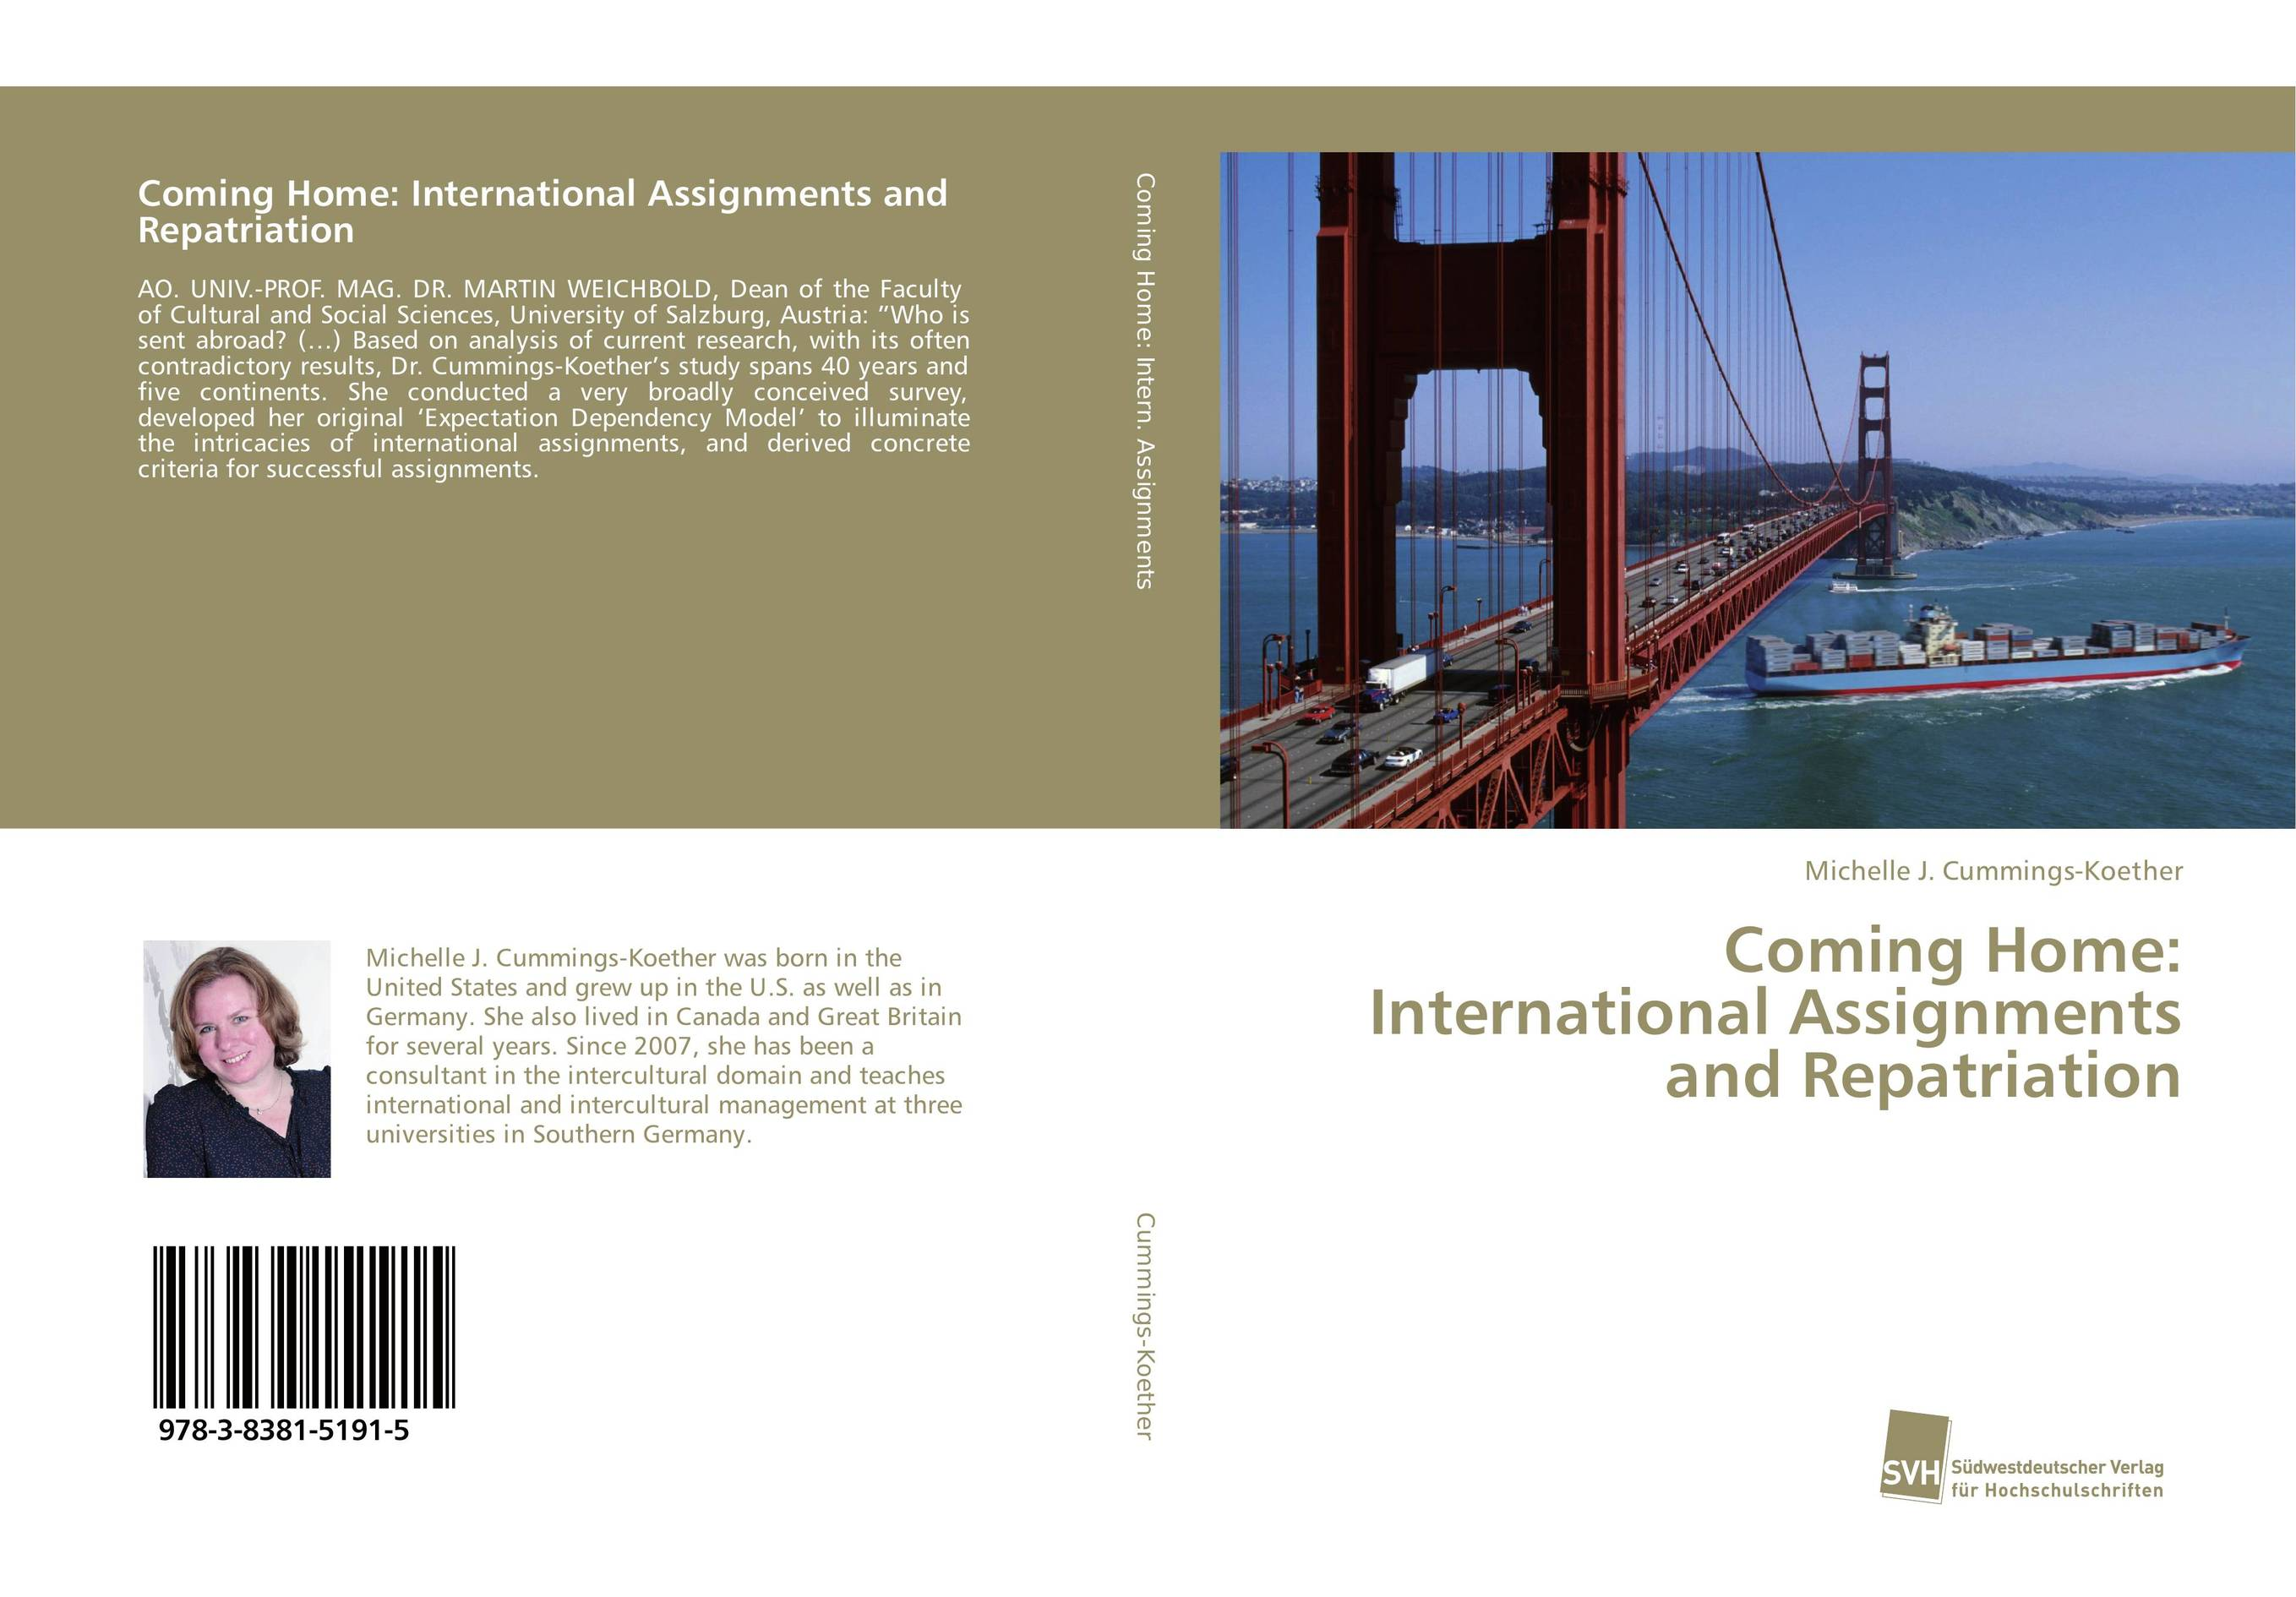 Coming Home: International Assignments and Repatriation